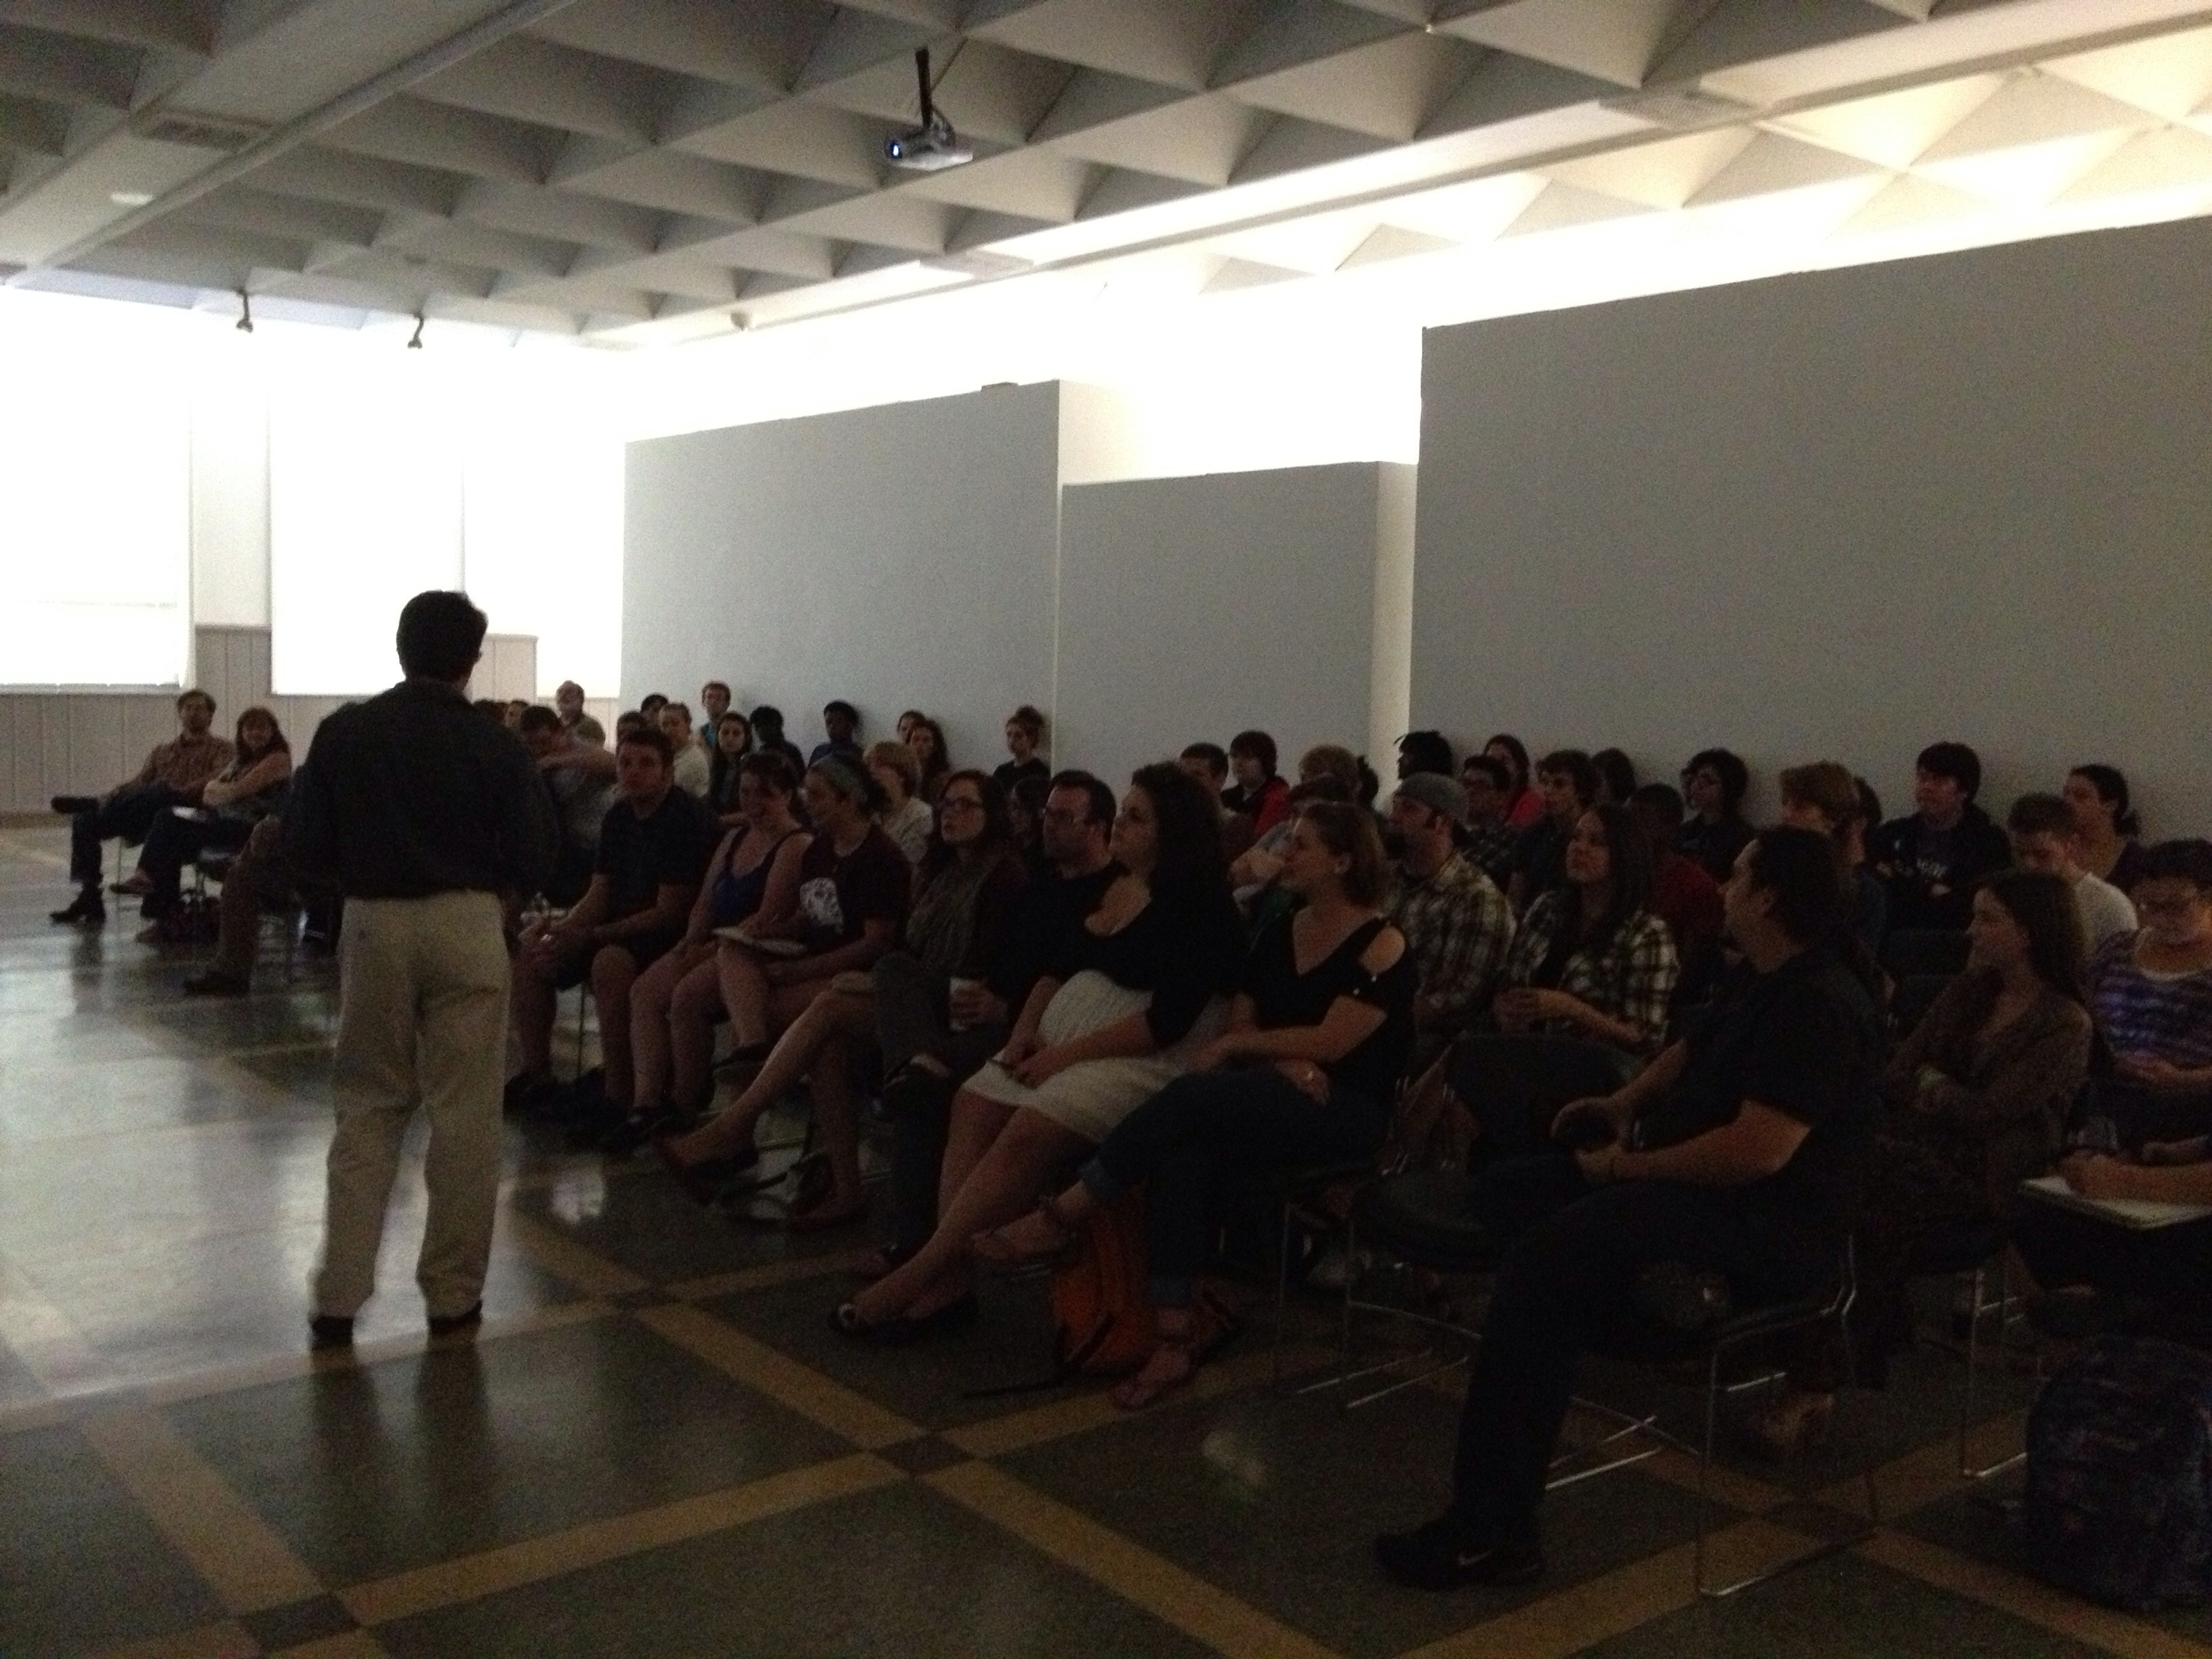 Giving Artist Talks: Why it's Important to Take Advantage of Every Opportunity